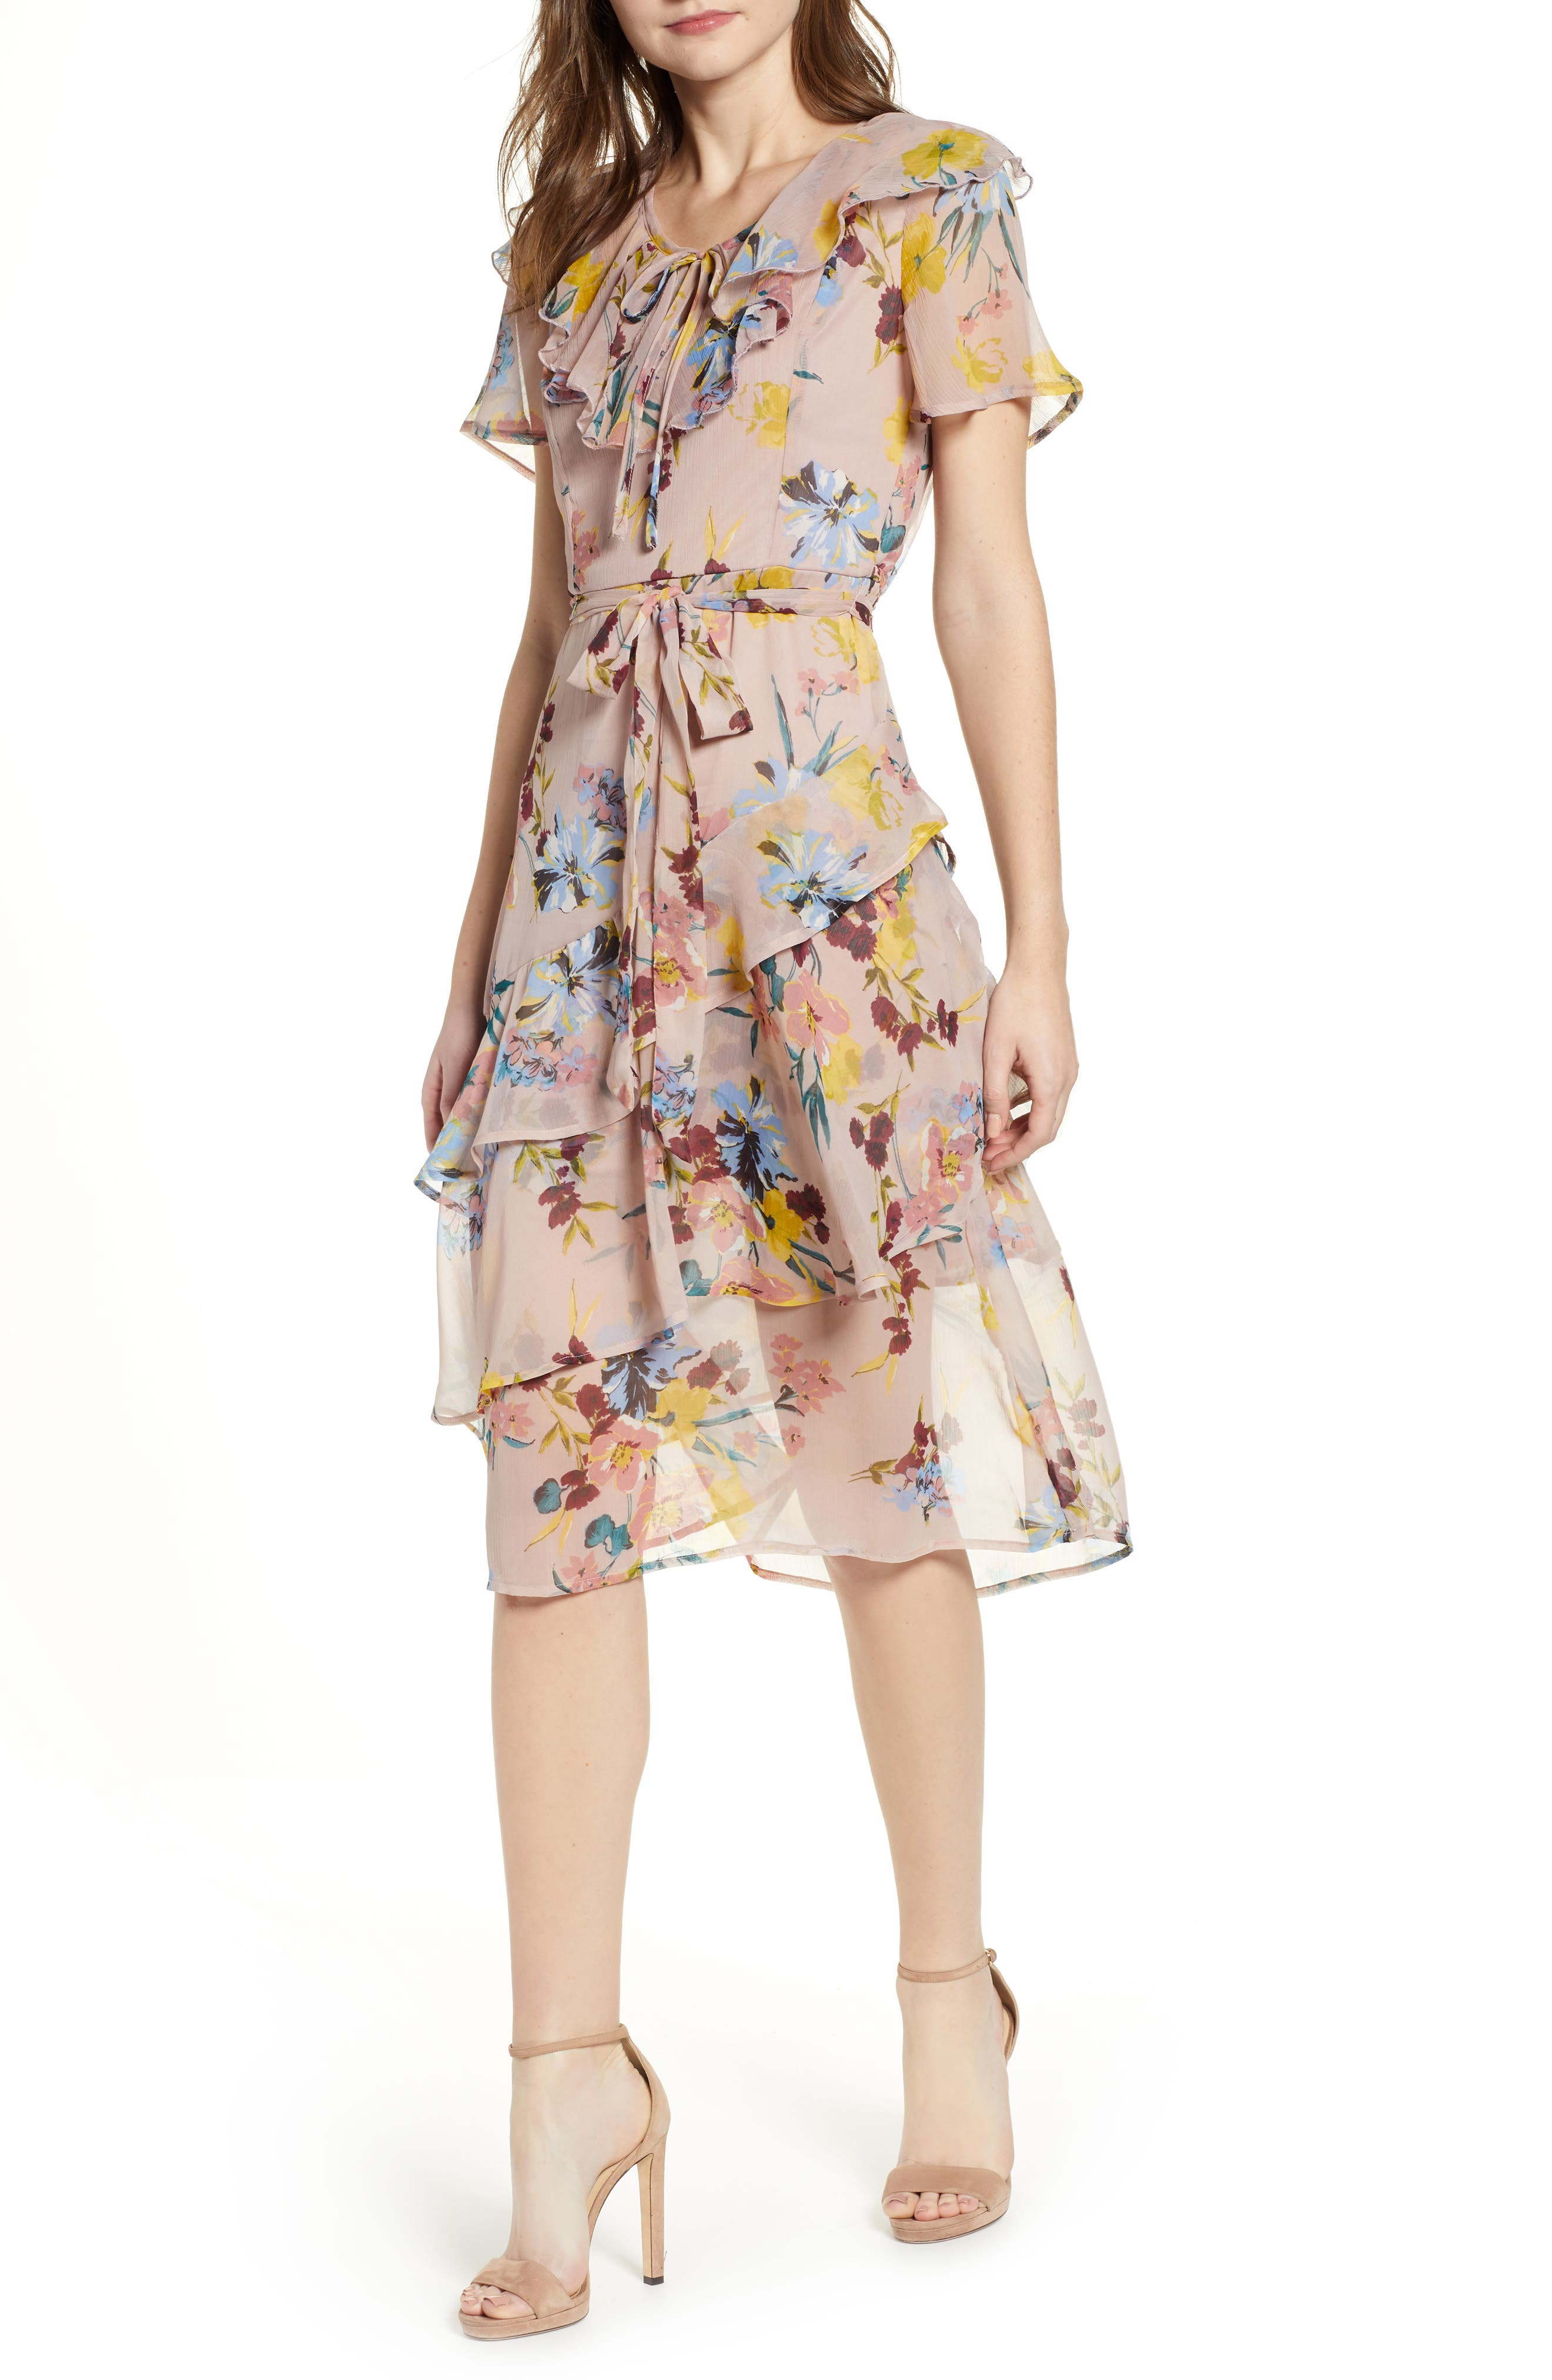 BAND OF GYPSIES Sunny Floral Print Dress in Blush/ Blue